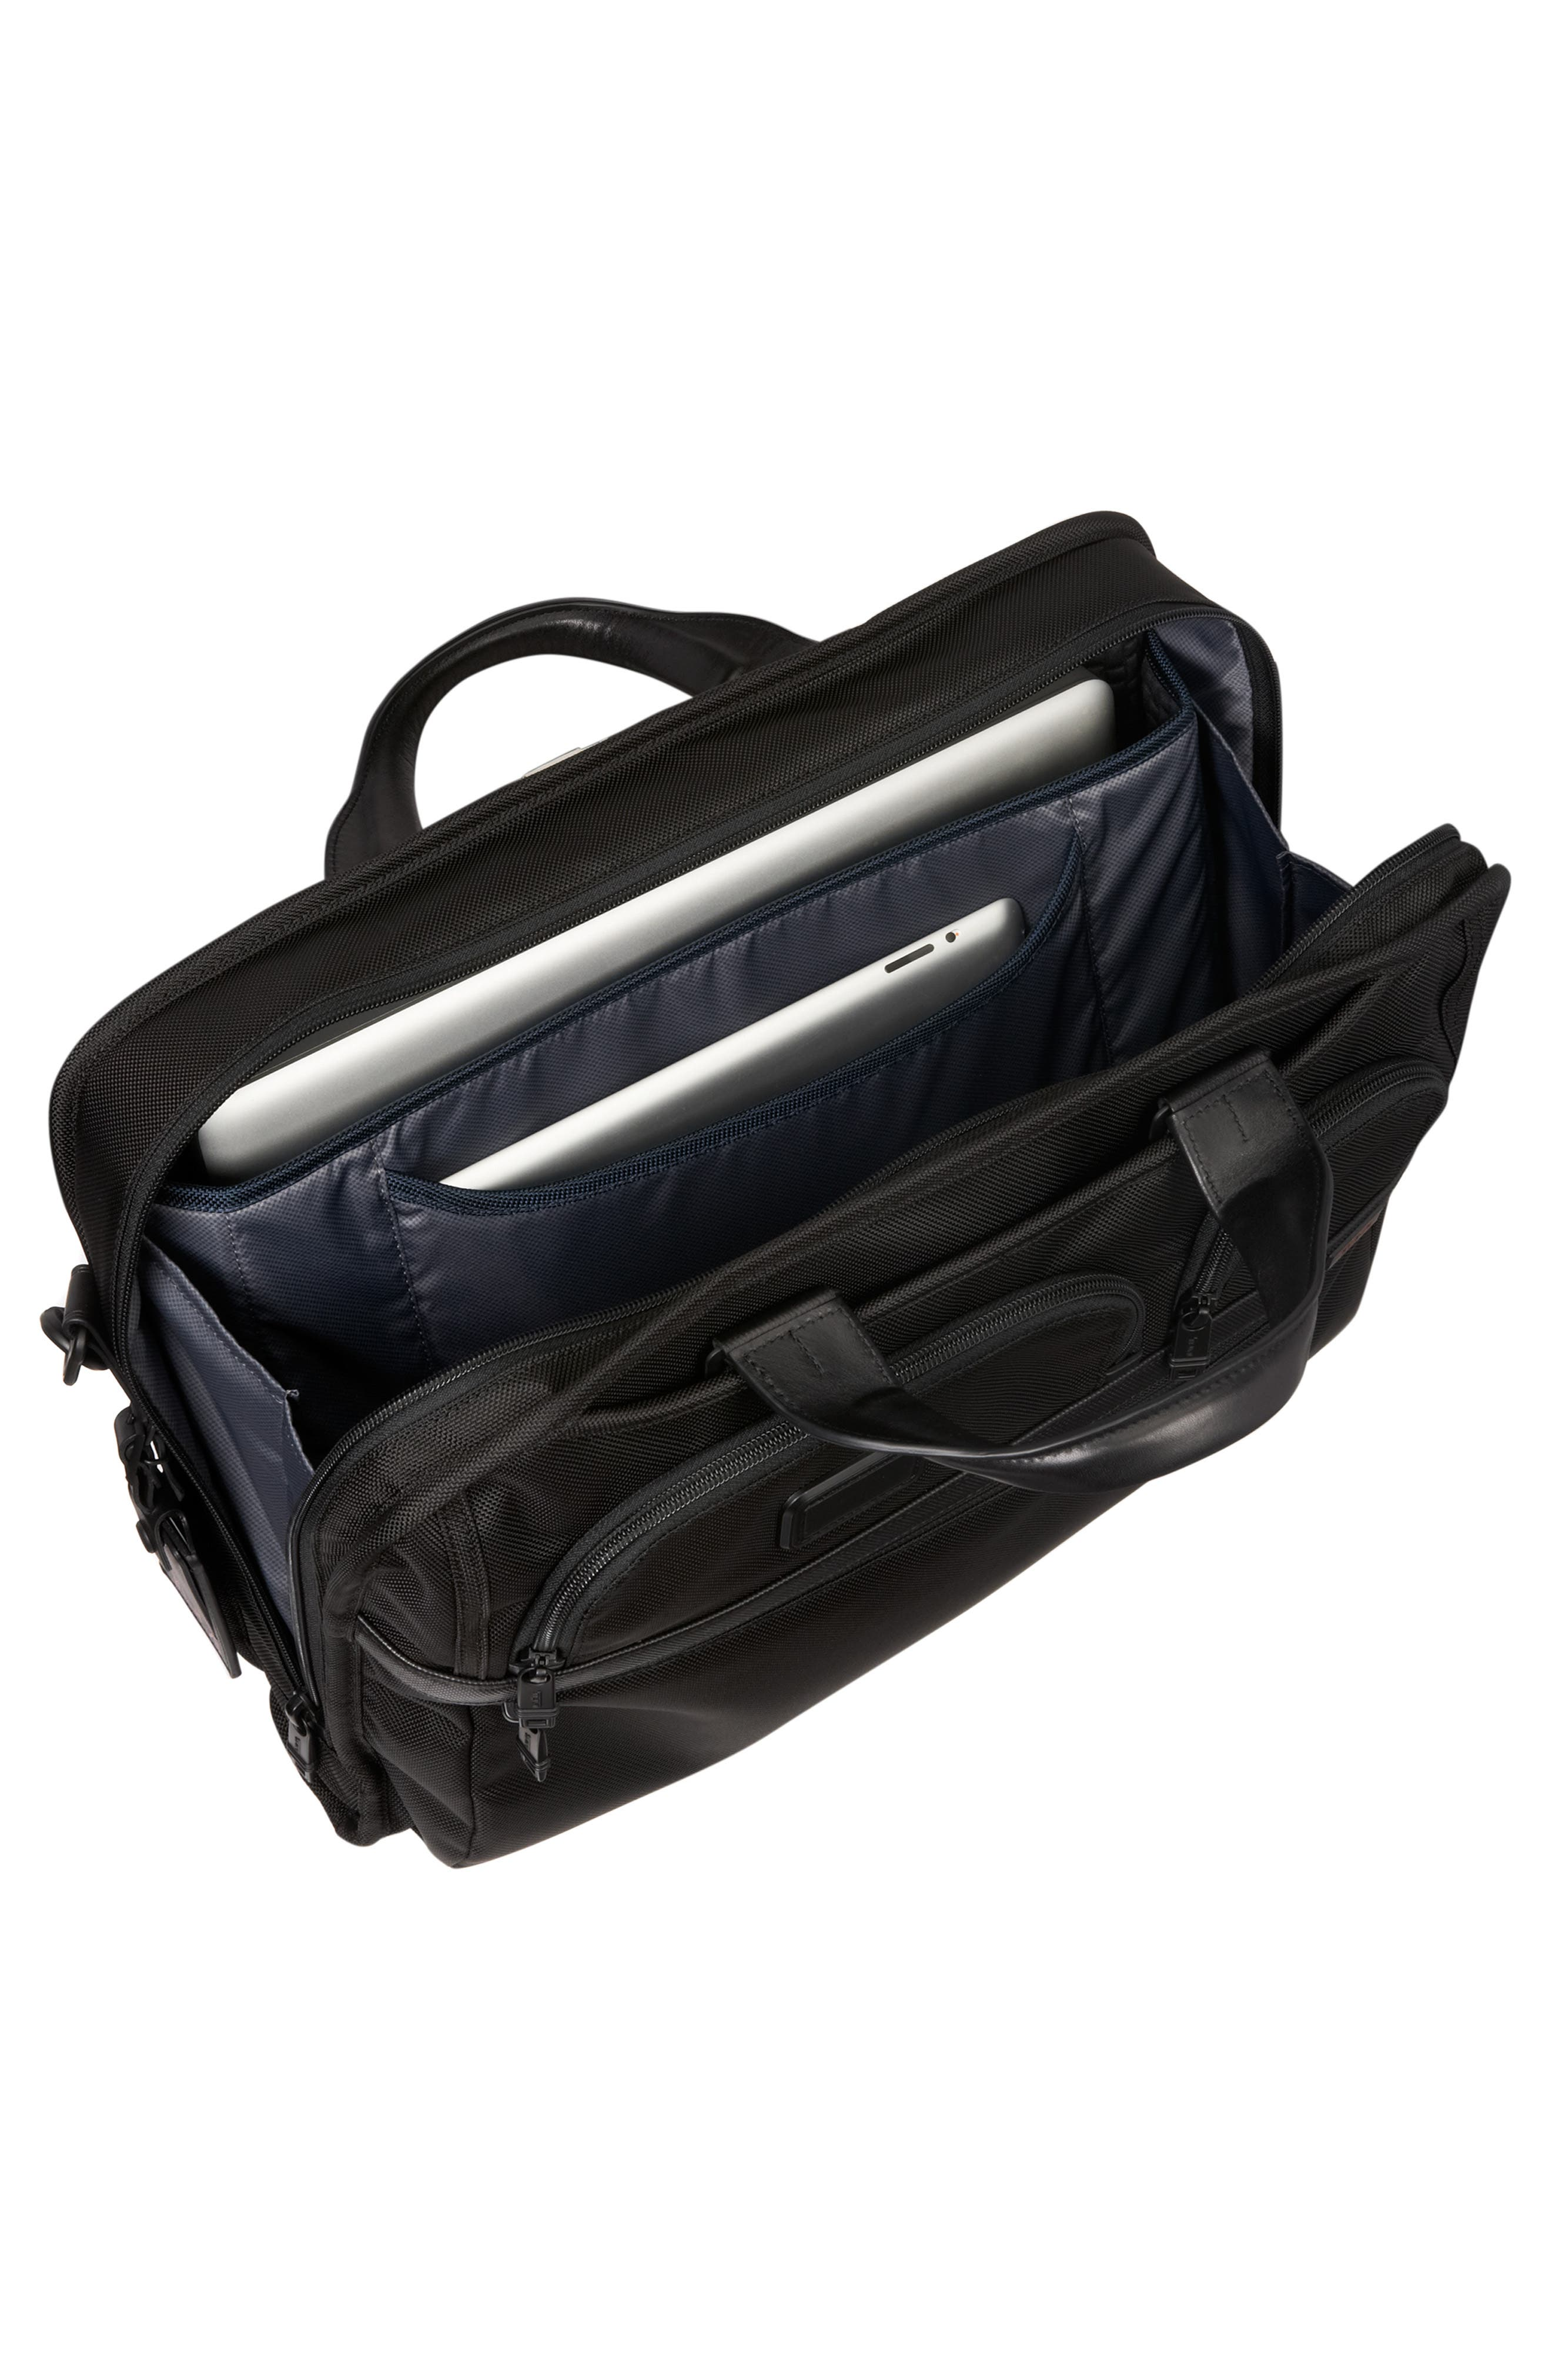 Alpha 2 Laptop Briefcase with Tumi ID Lock Pocket,                             Alternate thumbnail 4, color,                             BLACK